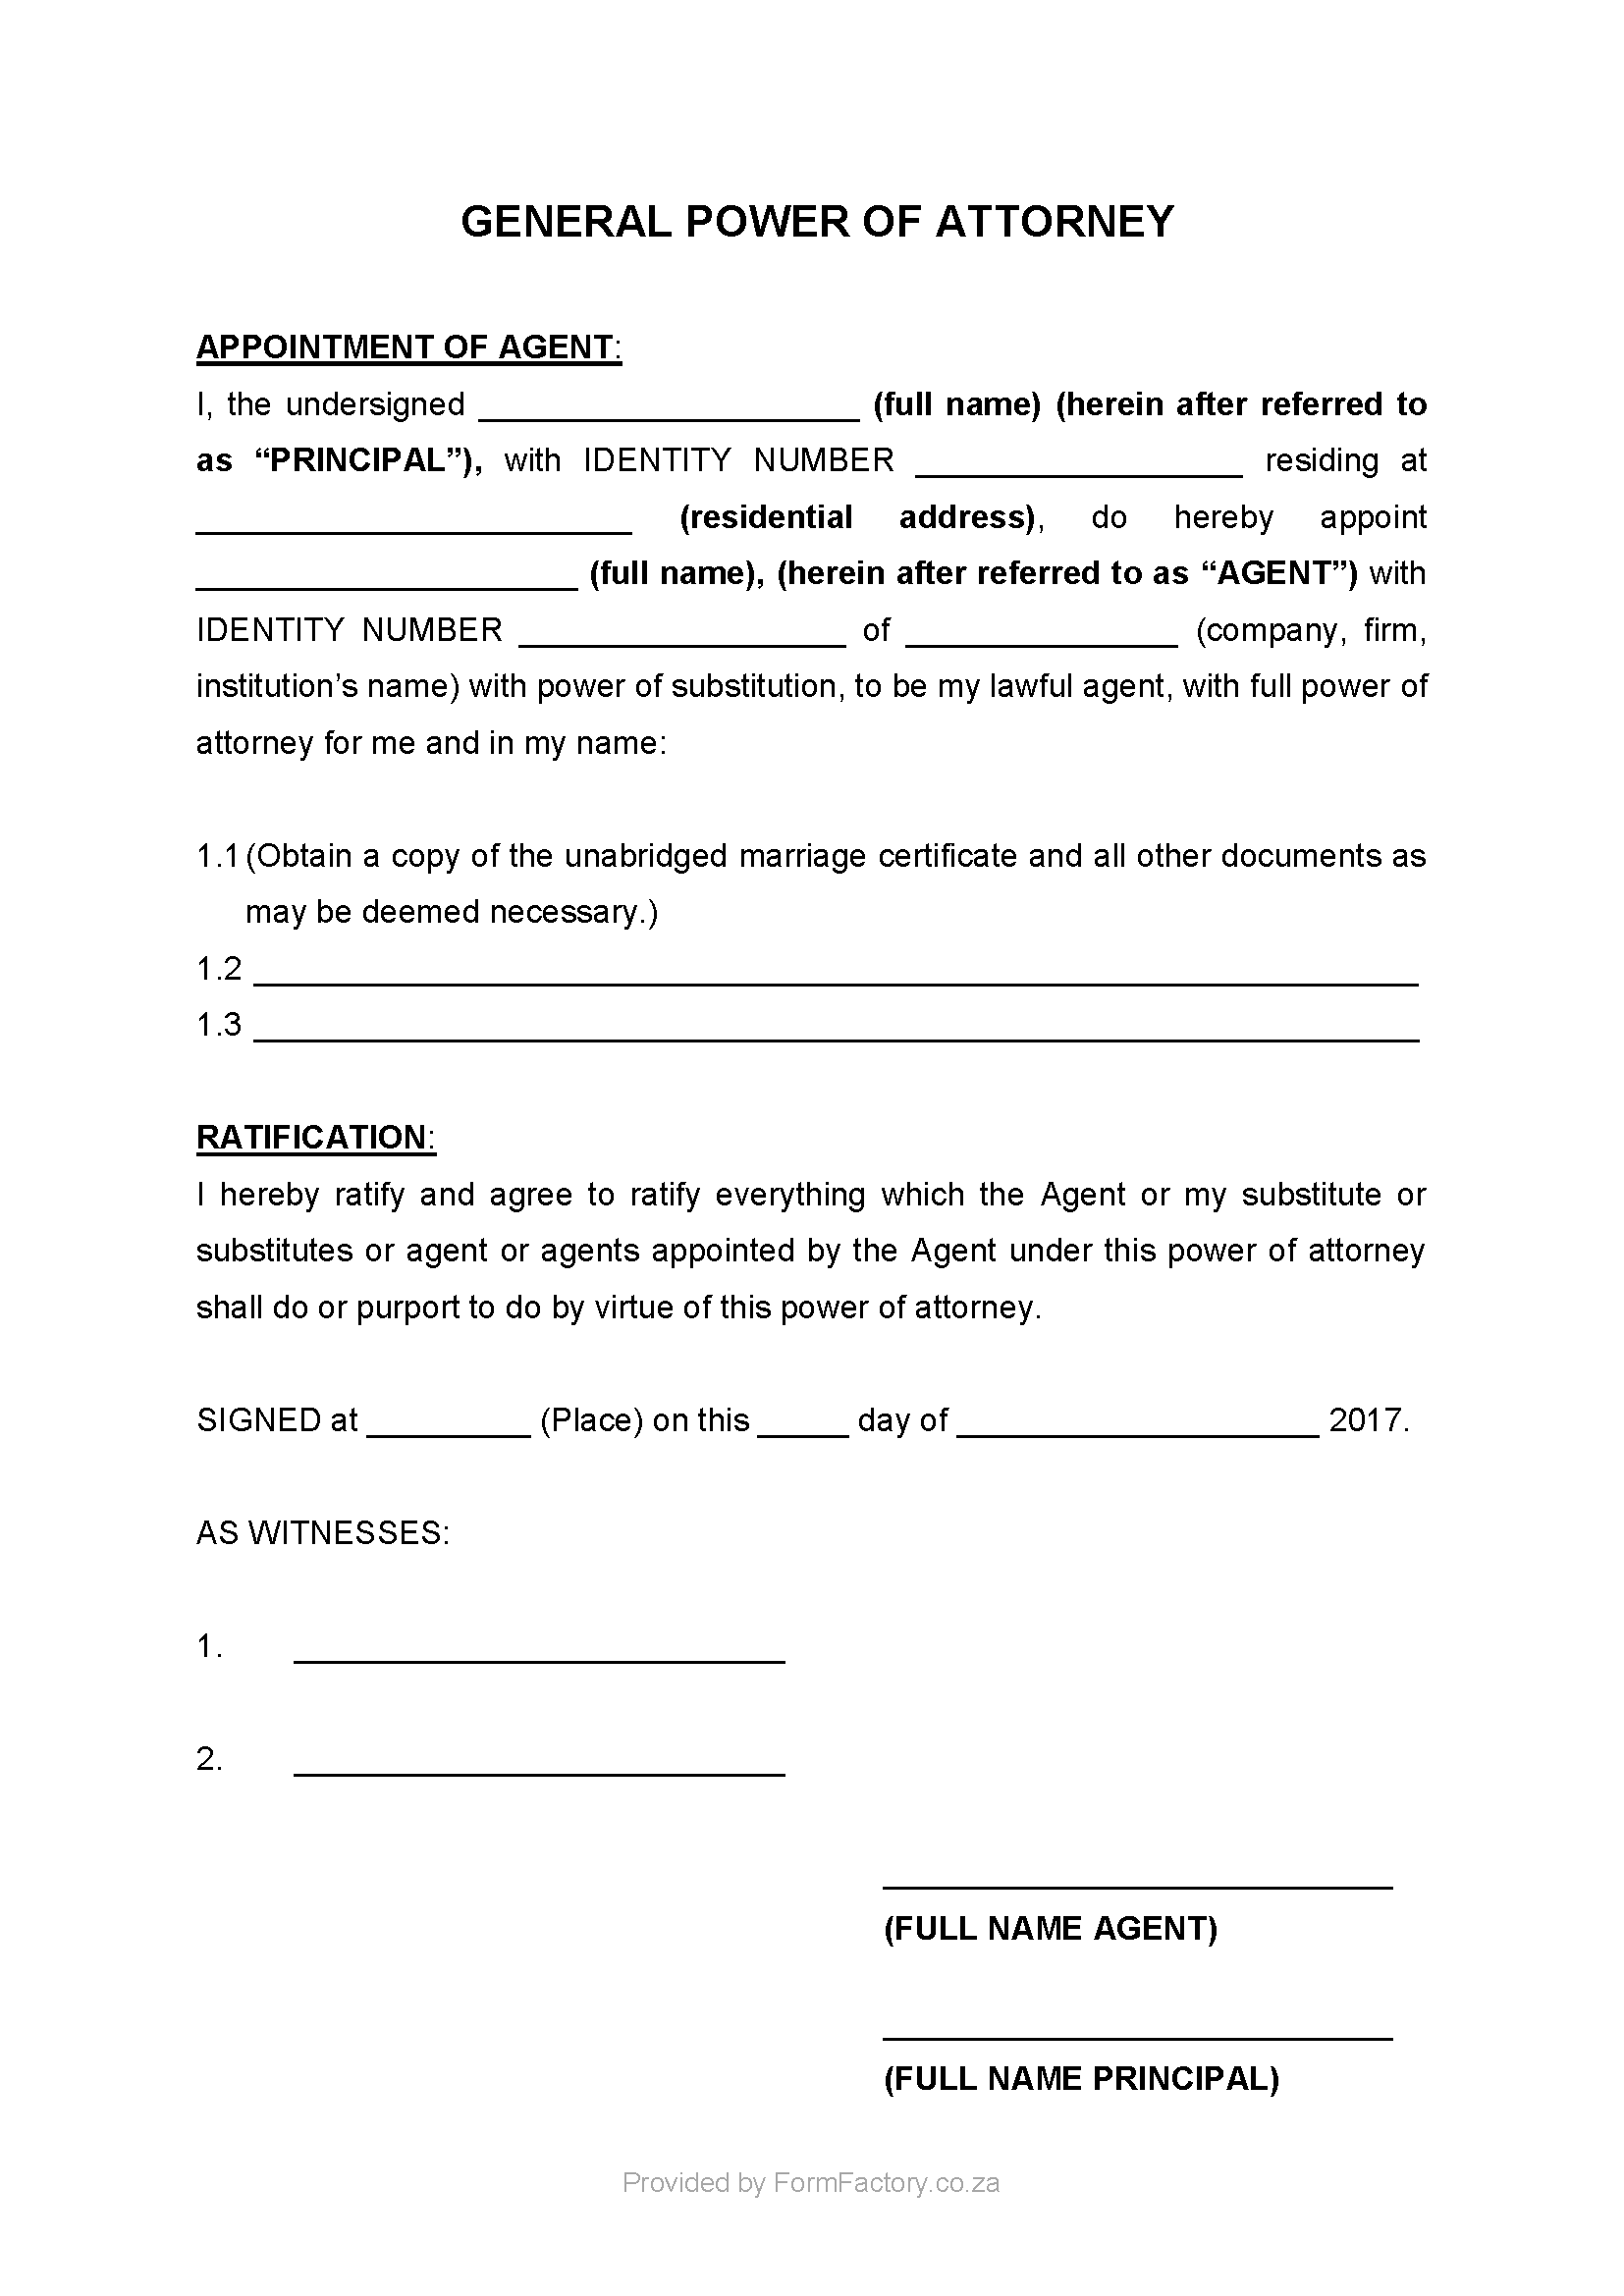 Download general power of attorney form formfactory download general power of attorney form falaconquin